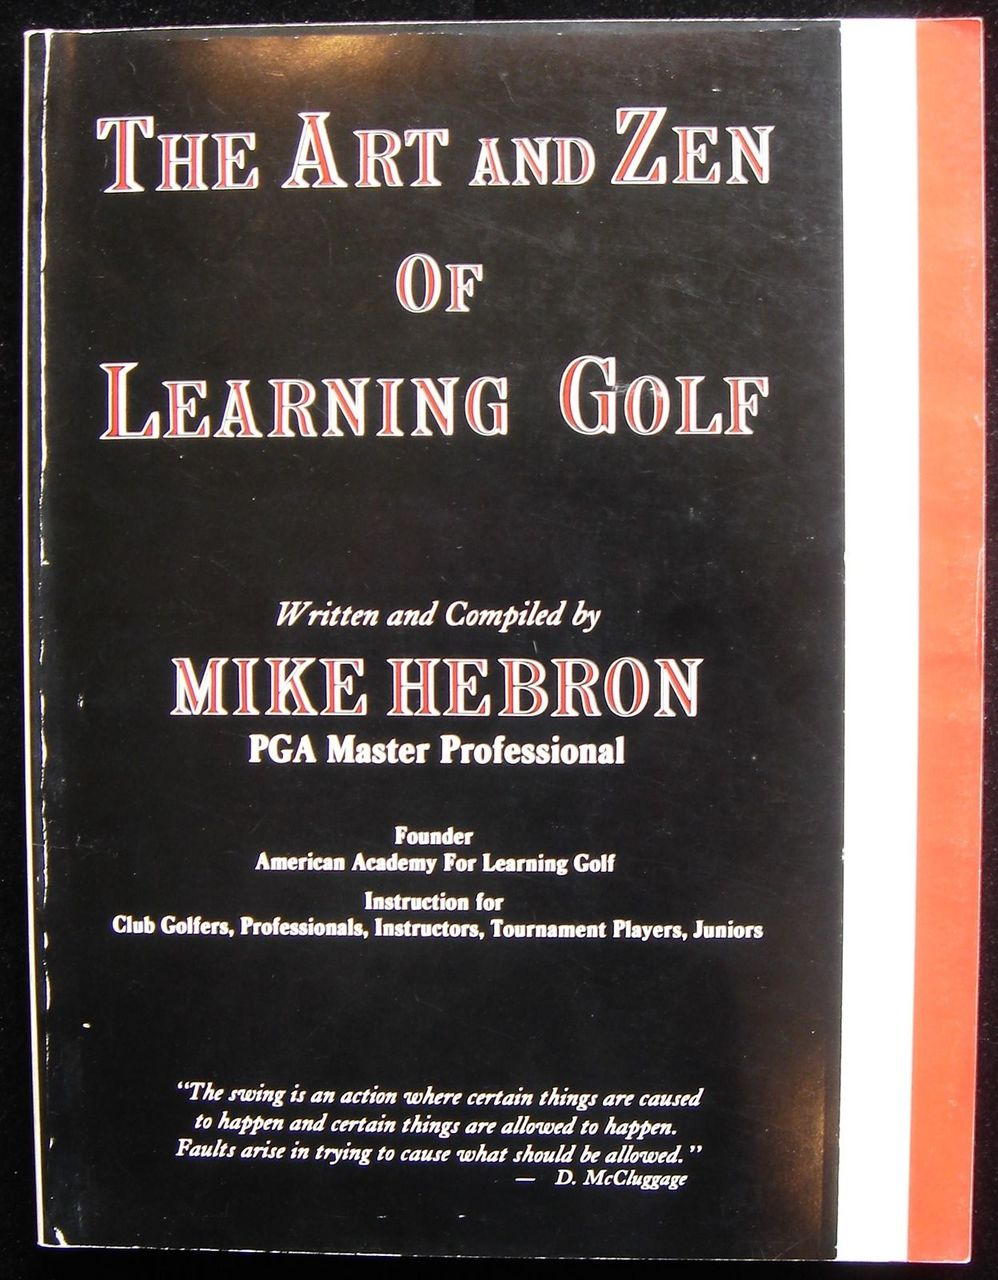 THE ART AND ZEN OF LEARNING GOLF, by Mike Hebron - 1990 [Signed]